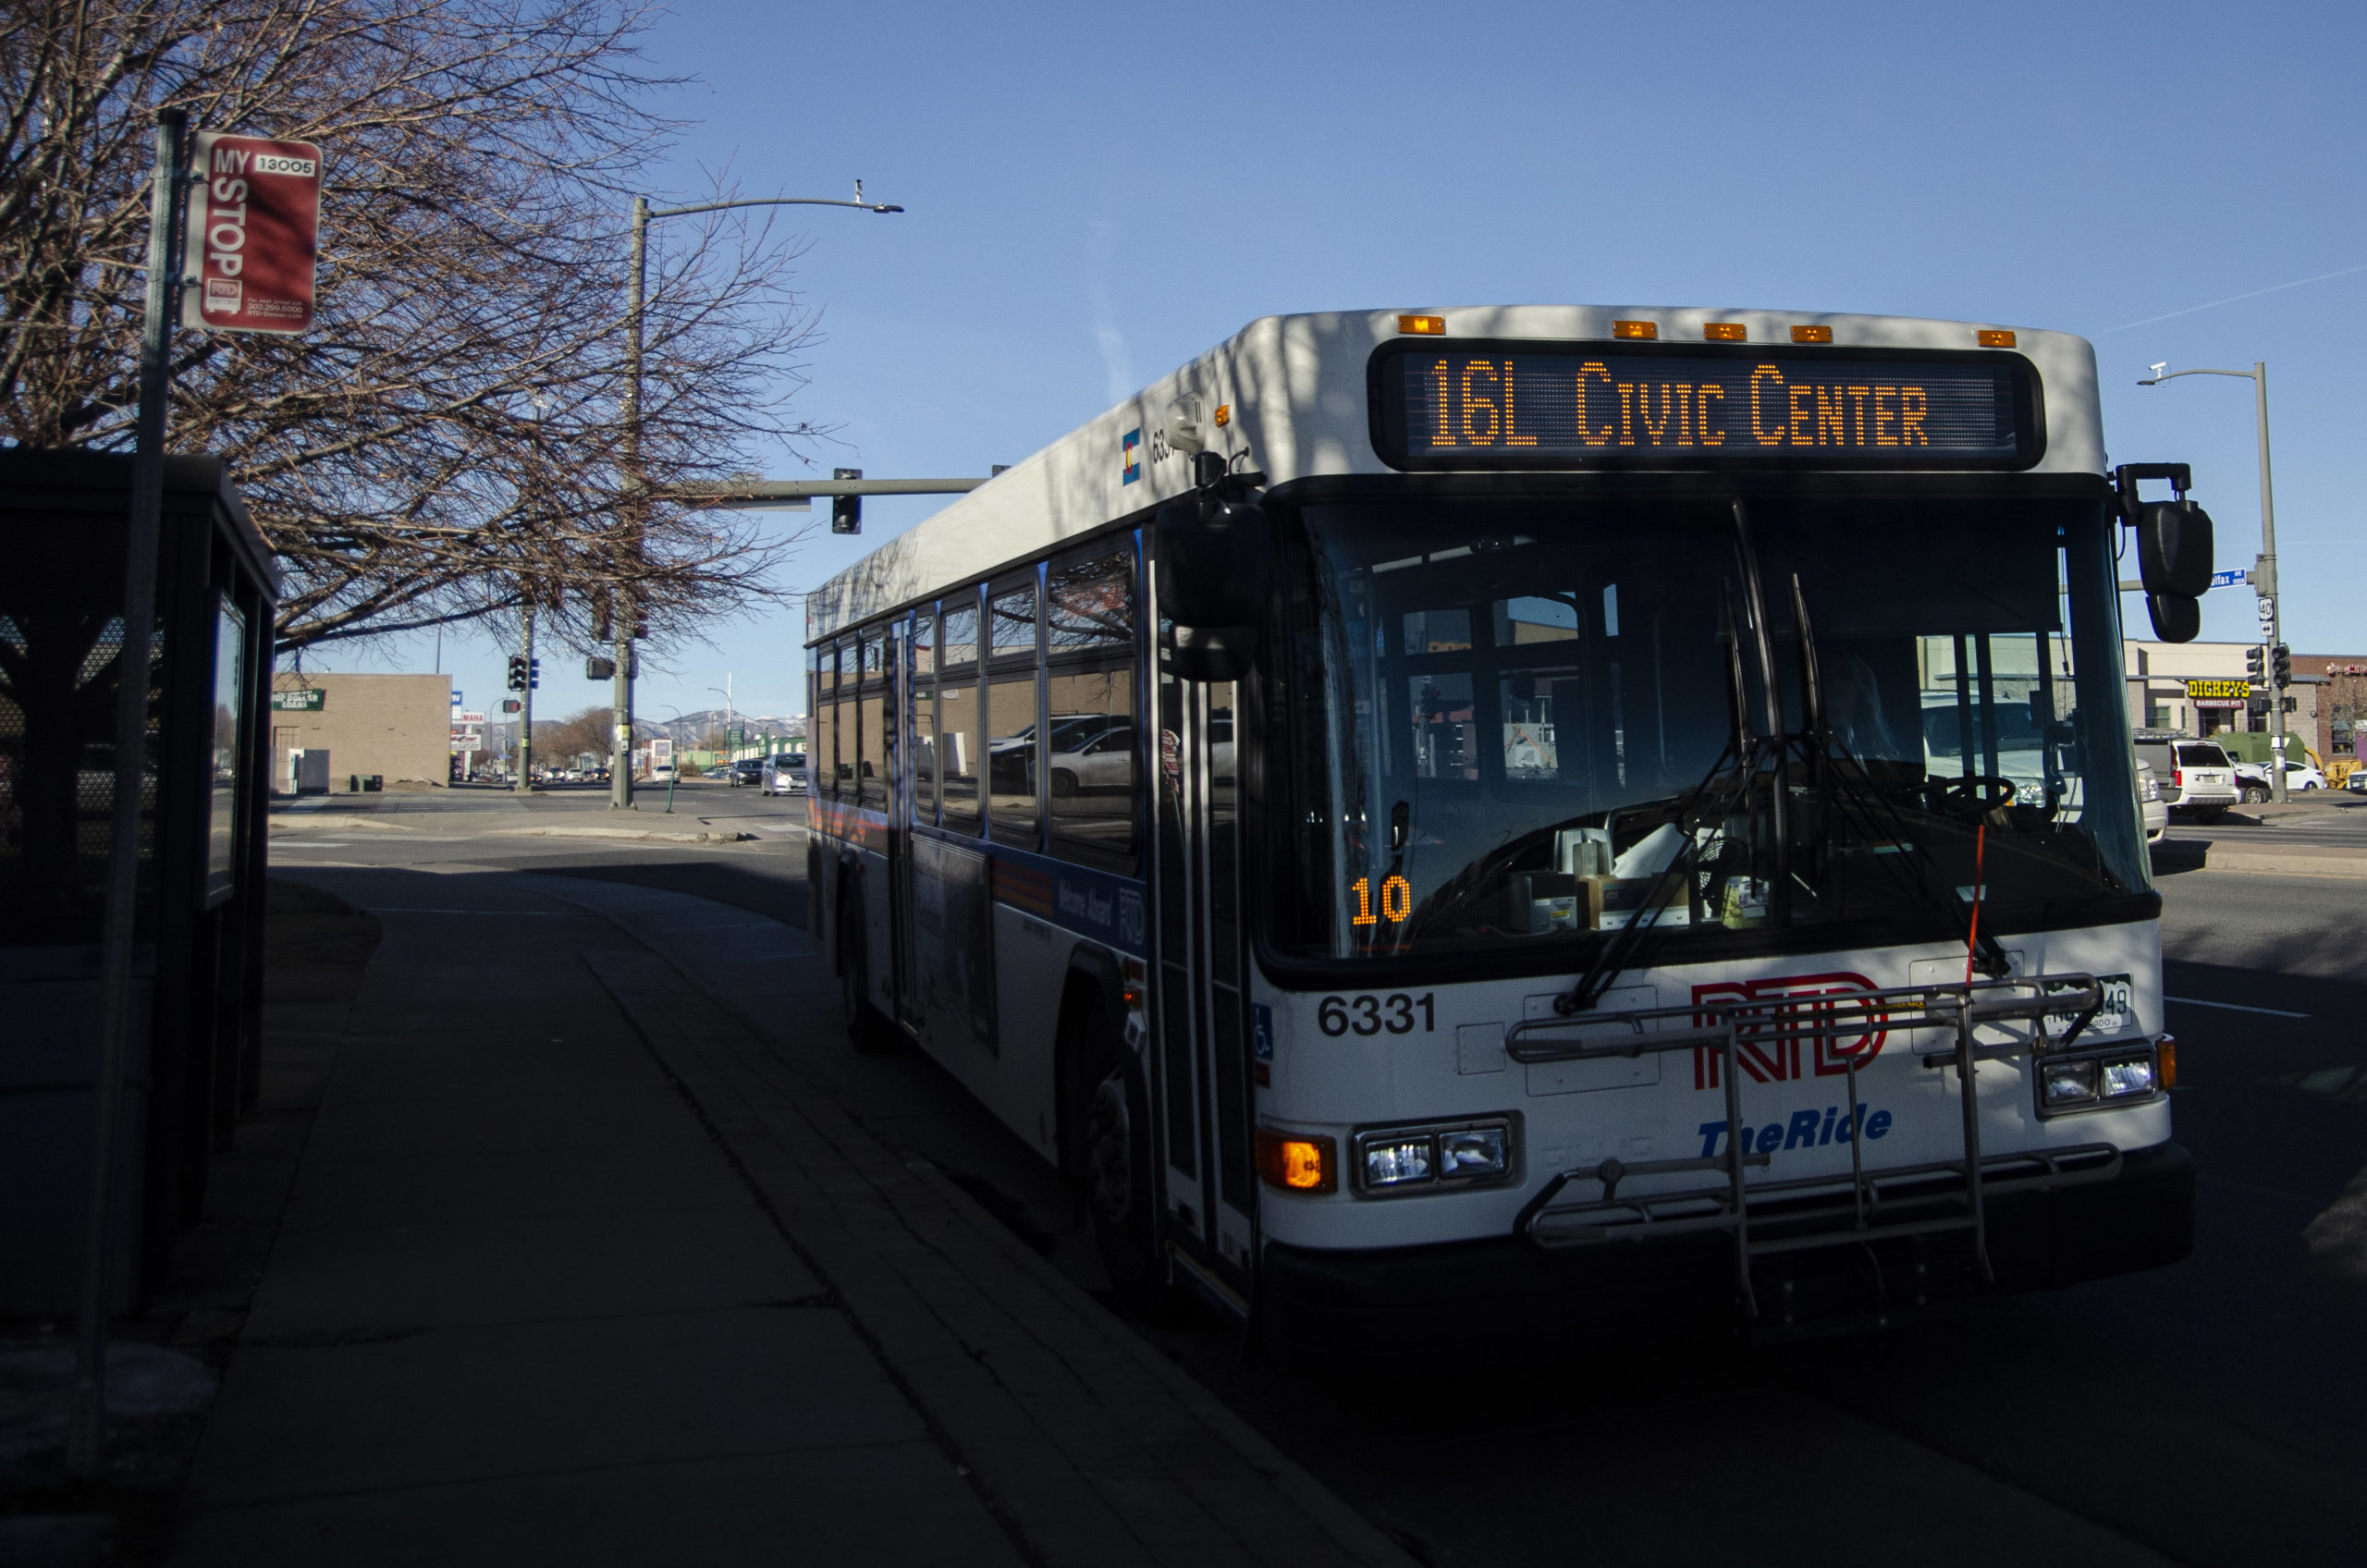 RTD is considering eliminating the 16L, which travels between Golden and Denver on West Colfax, entirely as part of larger plan to cut service and give its overworked drivers a break.